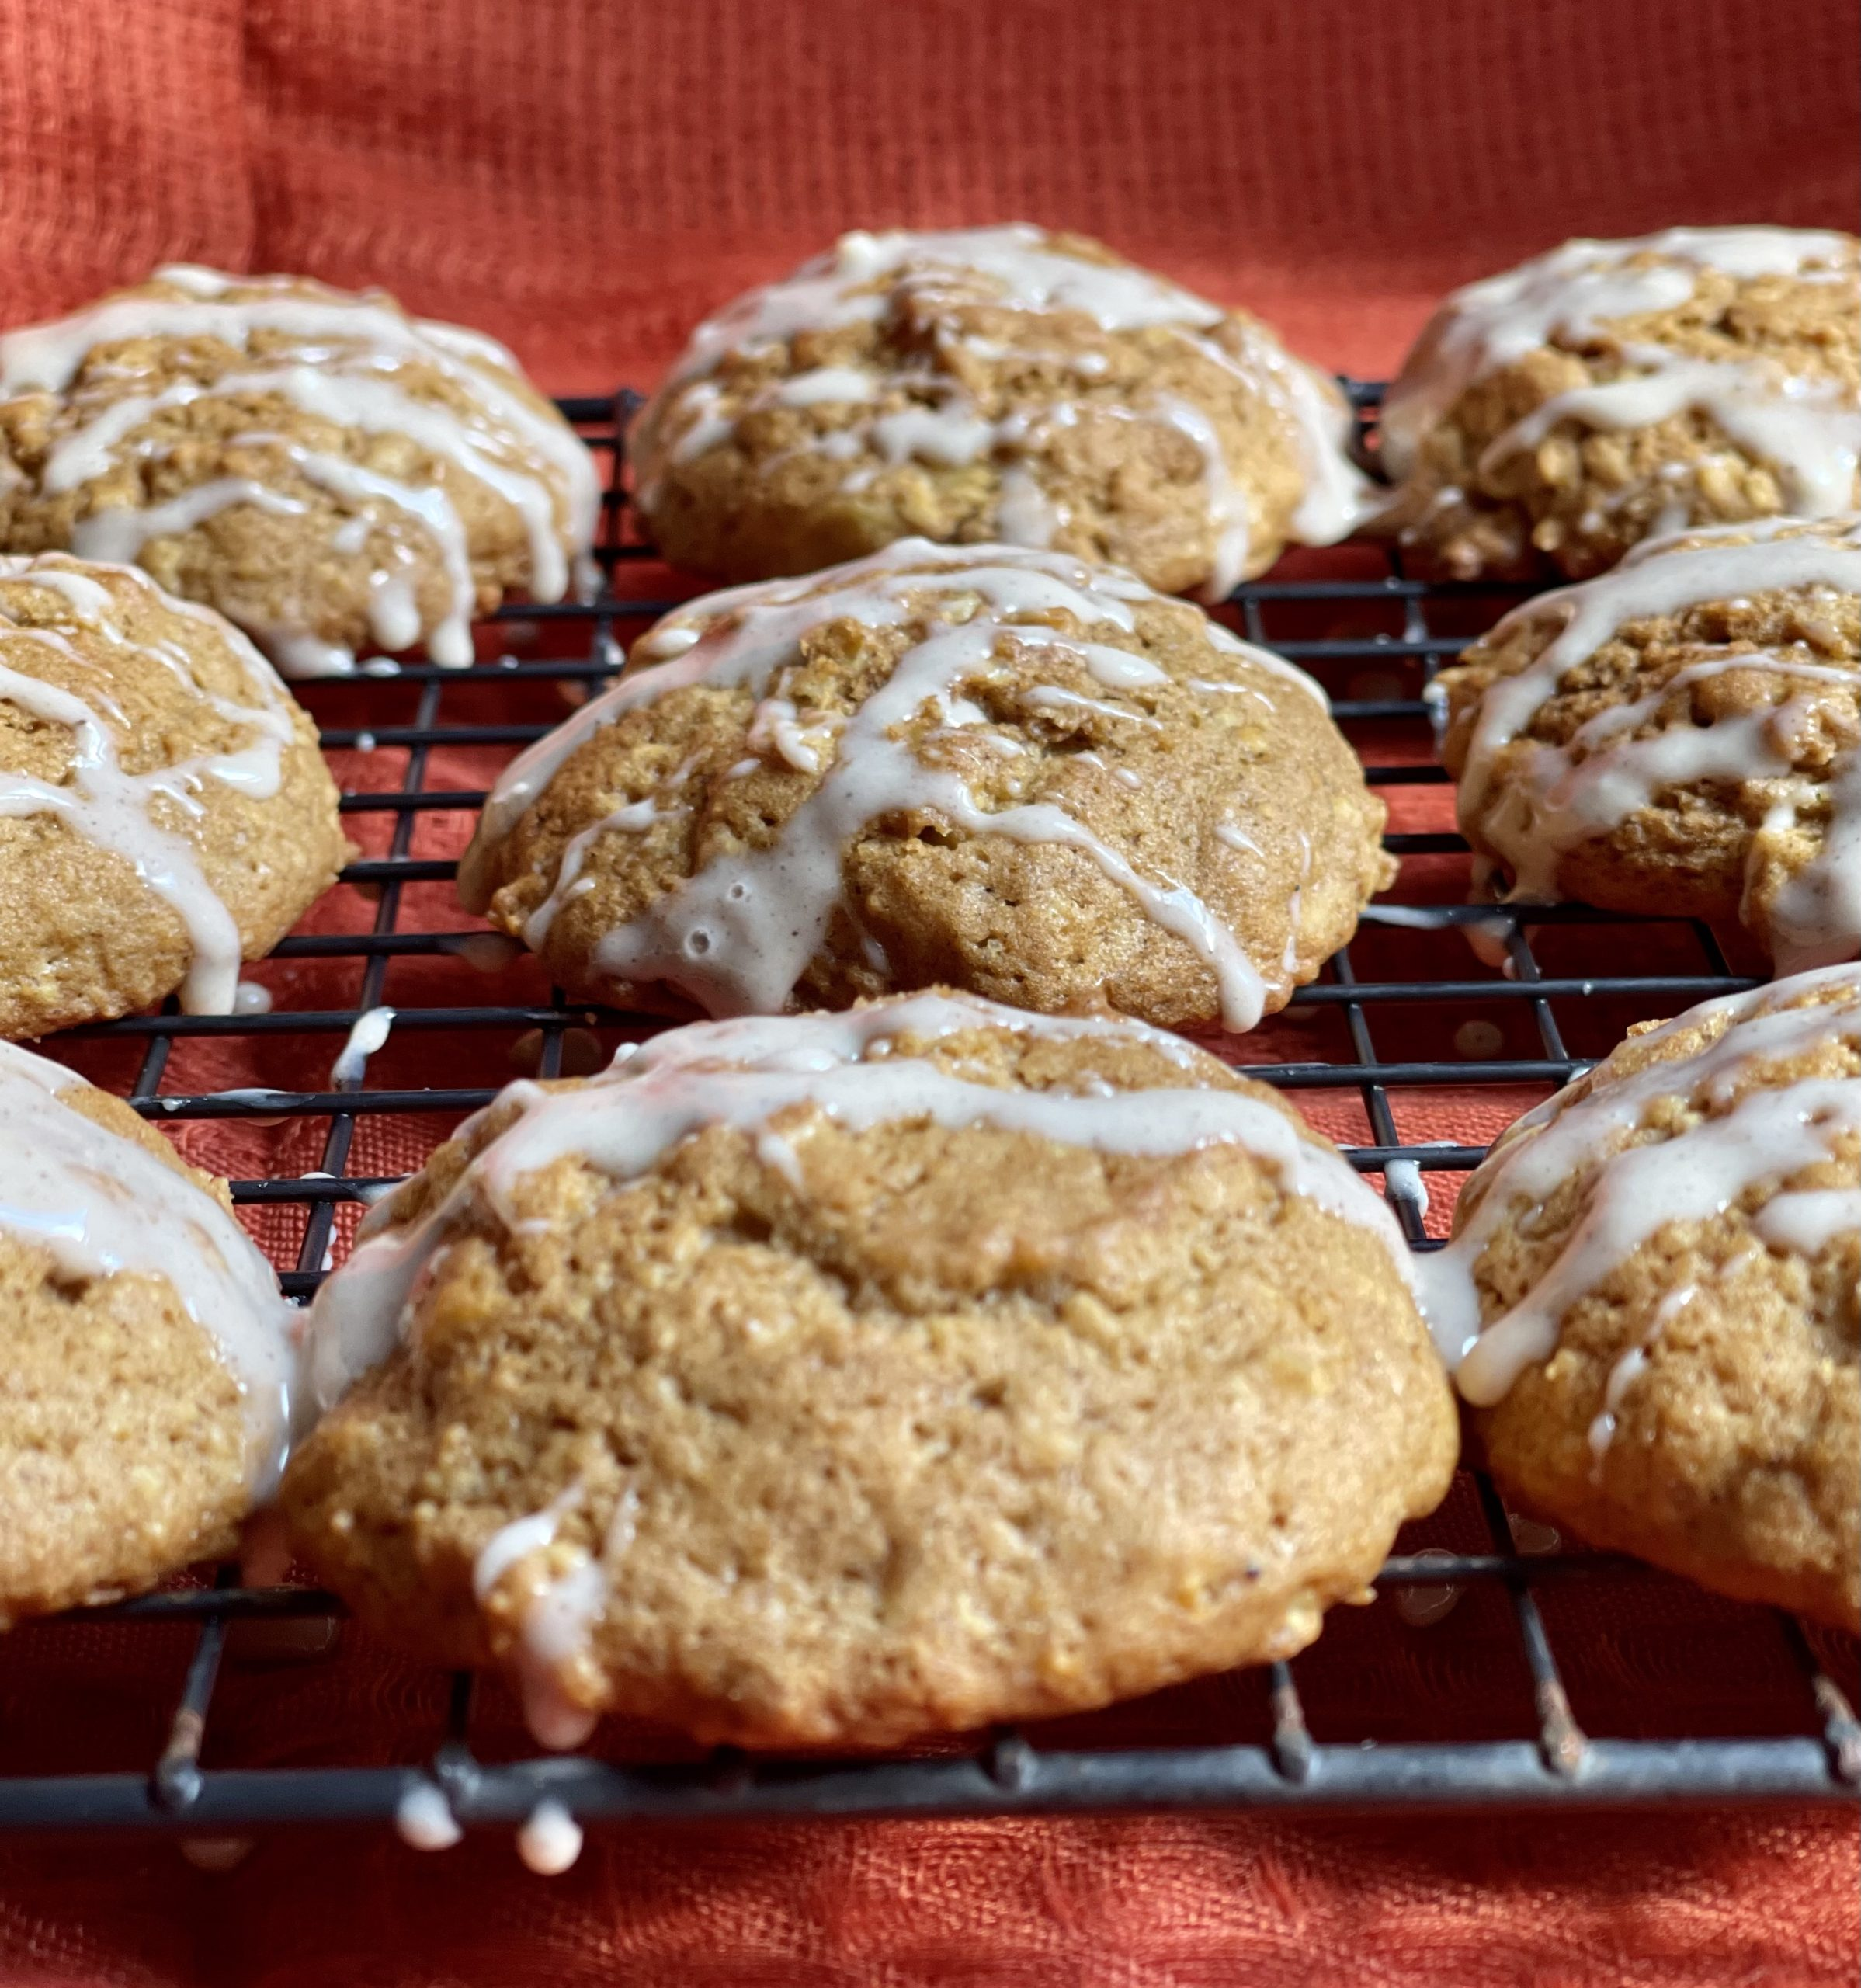 Pumpkin Spice Oatmeal Cookies - Pumpkin, Pumpkin Spice, and Oatmeal all combined to make a delicious fall treat, and a sweet Pumpkin Spice glaze on top to bring it all together! via @chocolatemore